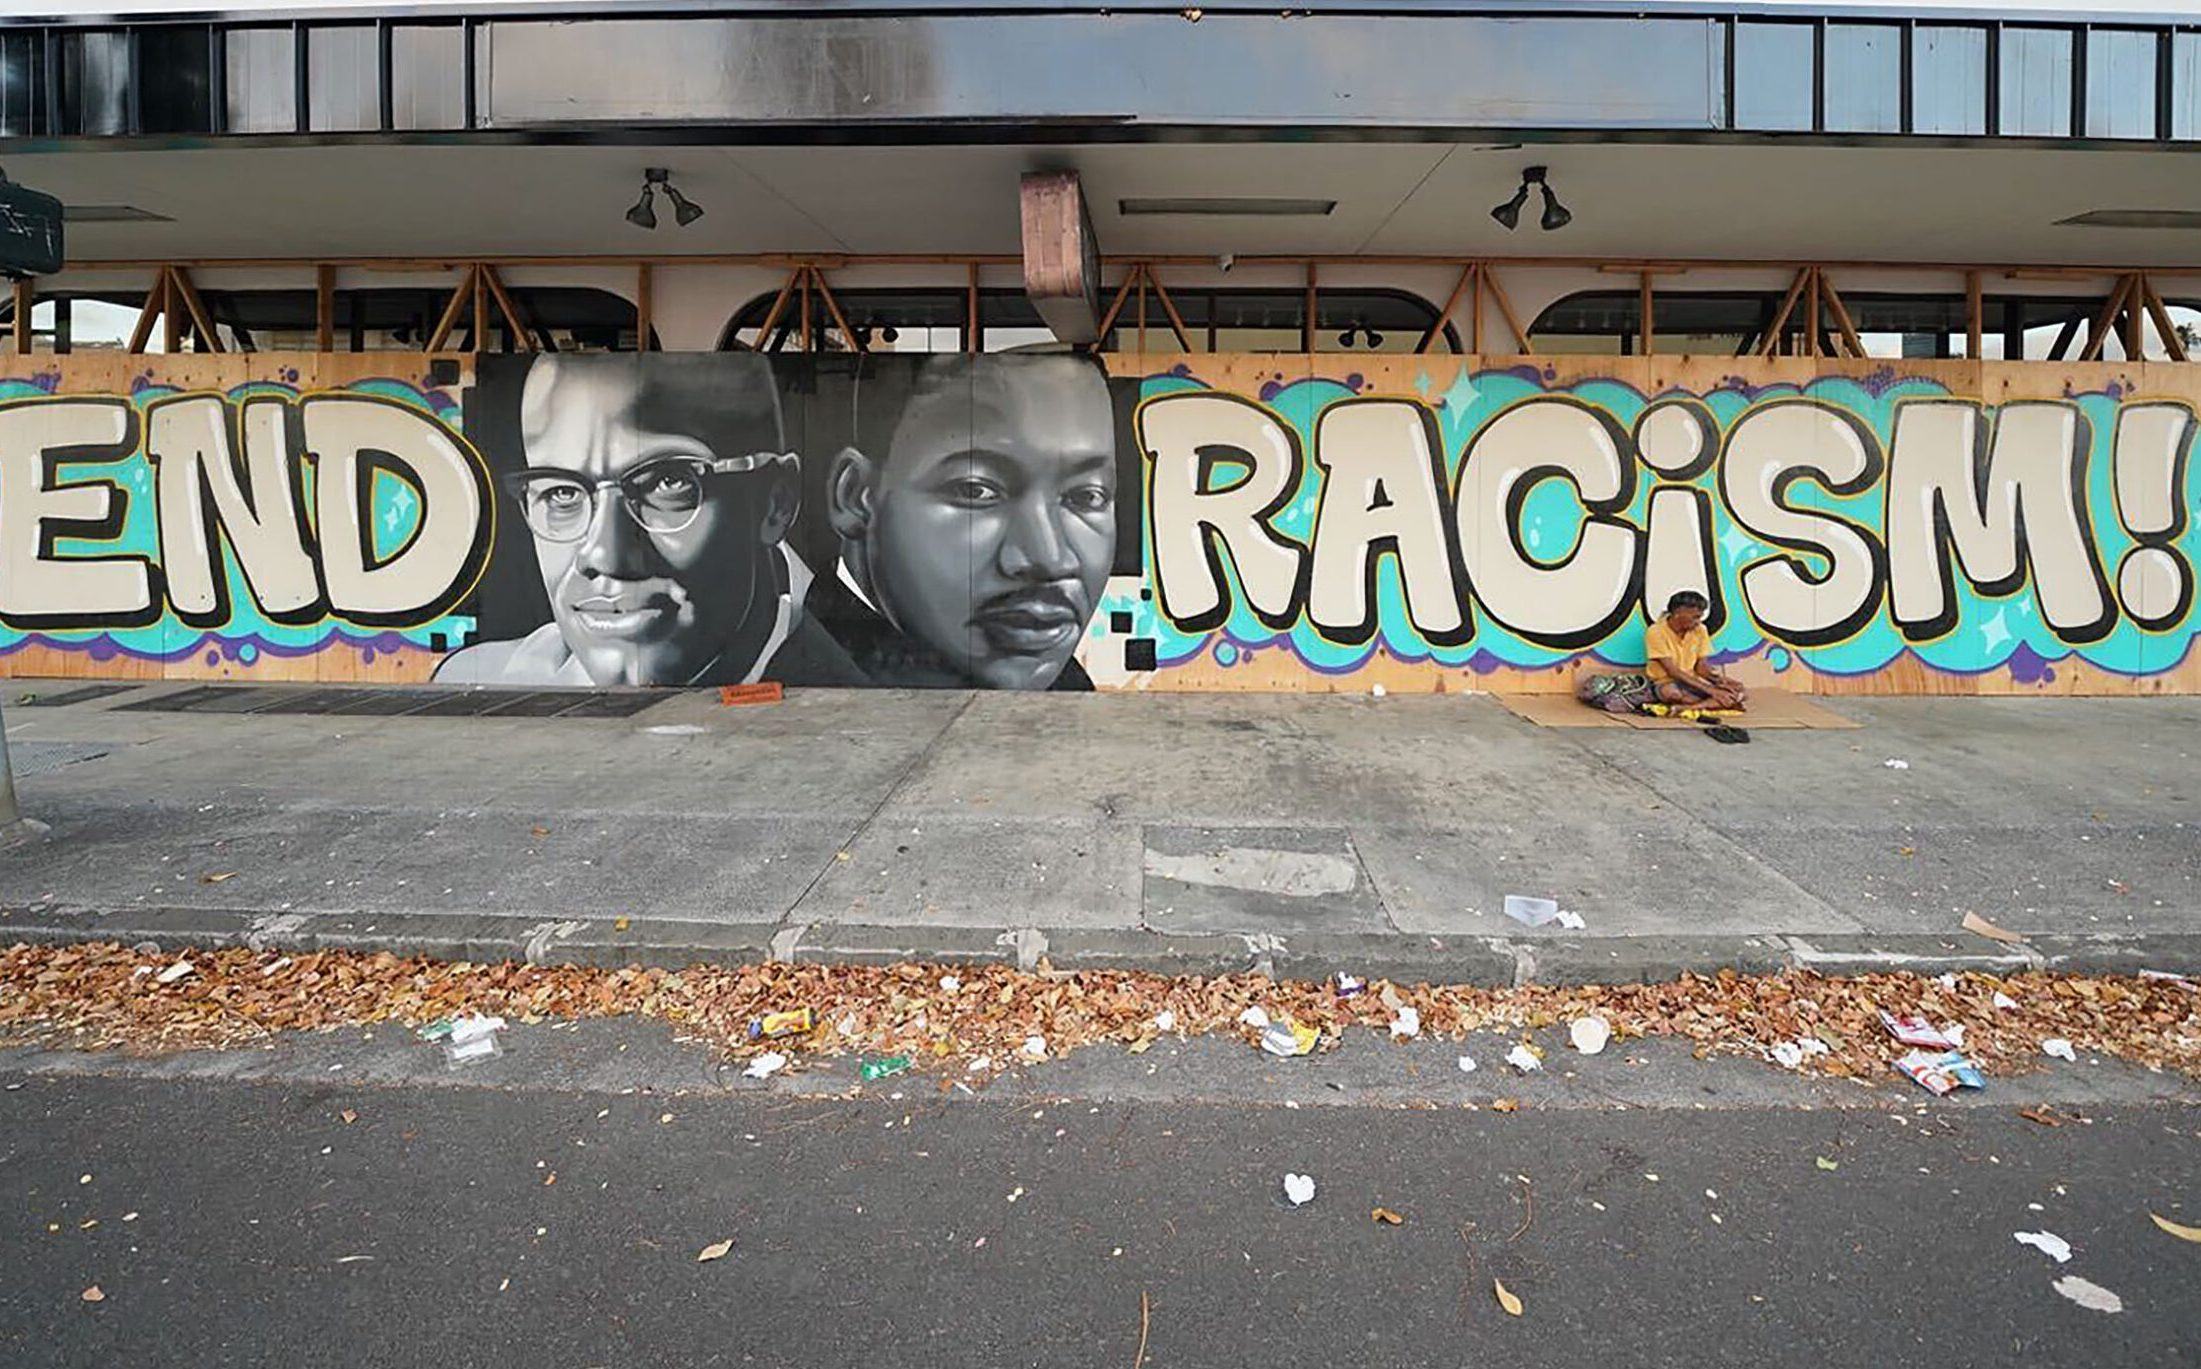 End Racism painting on the bottom floor of building at the intersection of Kaheka Street and King Street. June 25, 2020